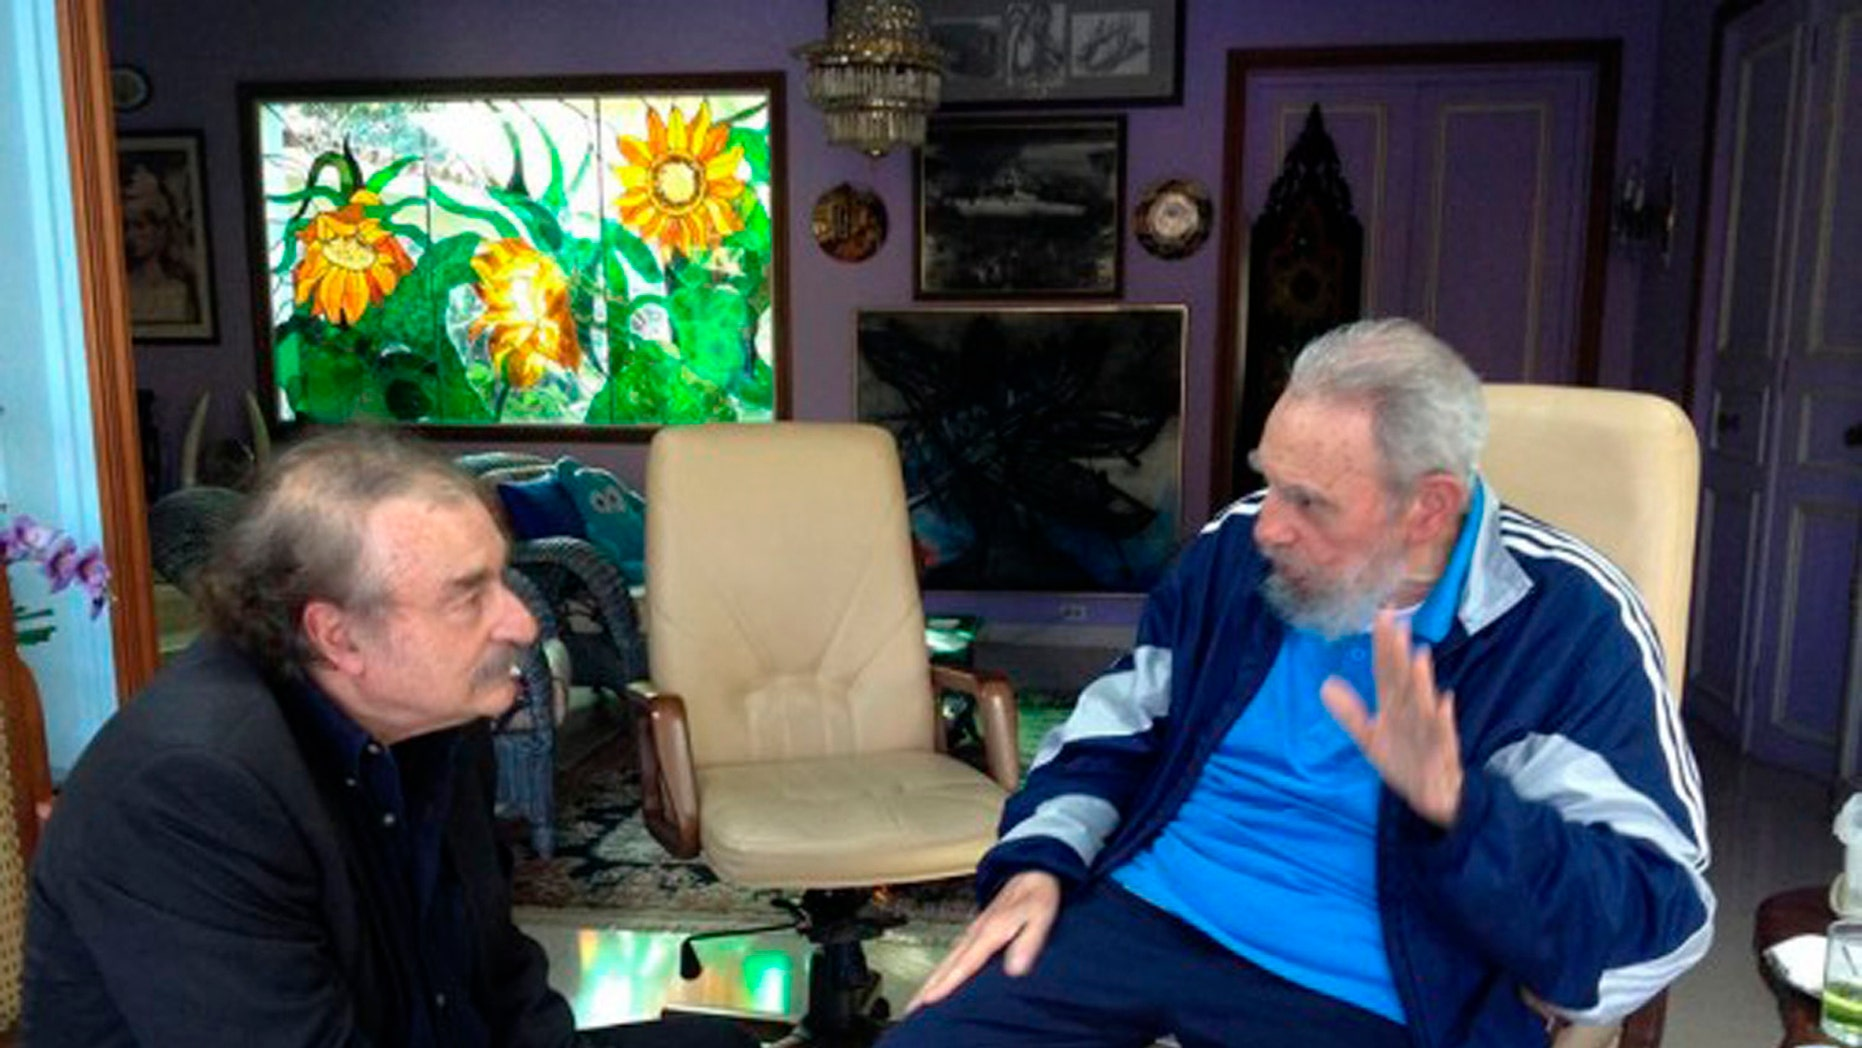 In this Friday, Dec. 13, 2013 photo released by the state media Cubadebate website, Cuban leader Fidel Castro, right, talks with Spanish journalist, writer and former editor-in-chief of Le Monde diplomatique, Ignacio Ramonet in Havana, Cuba. (AP Photo/Granma, Estudios Revolucion)